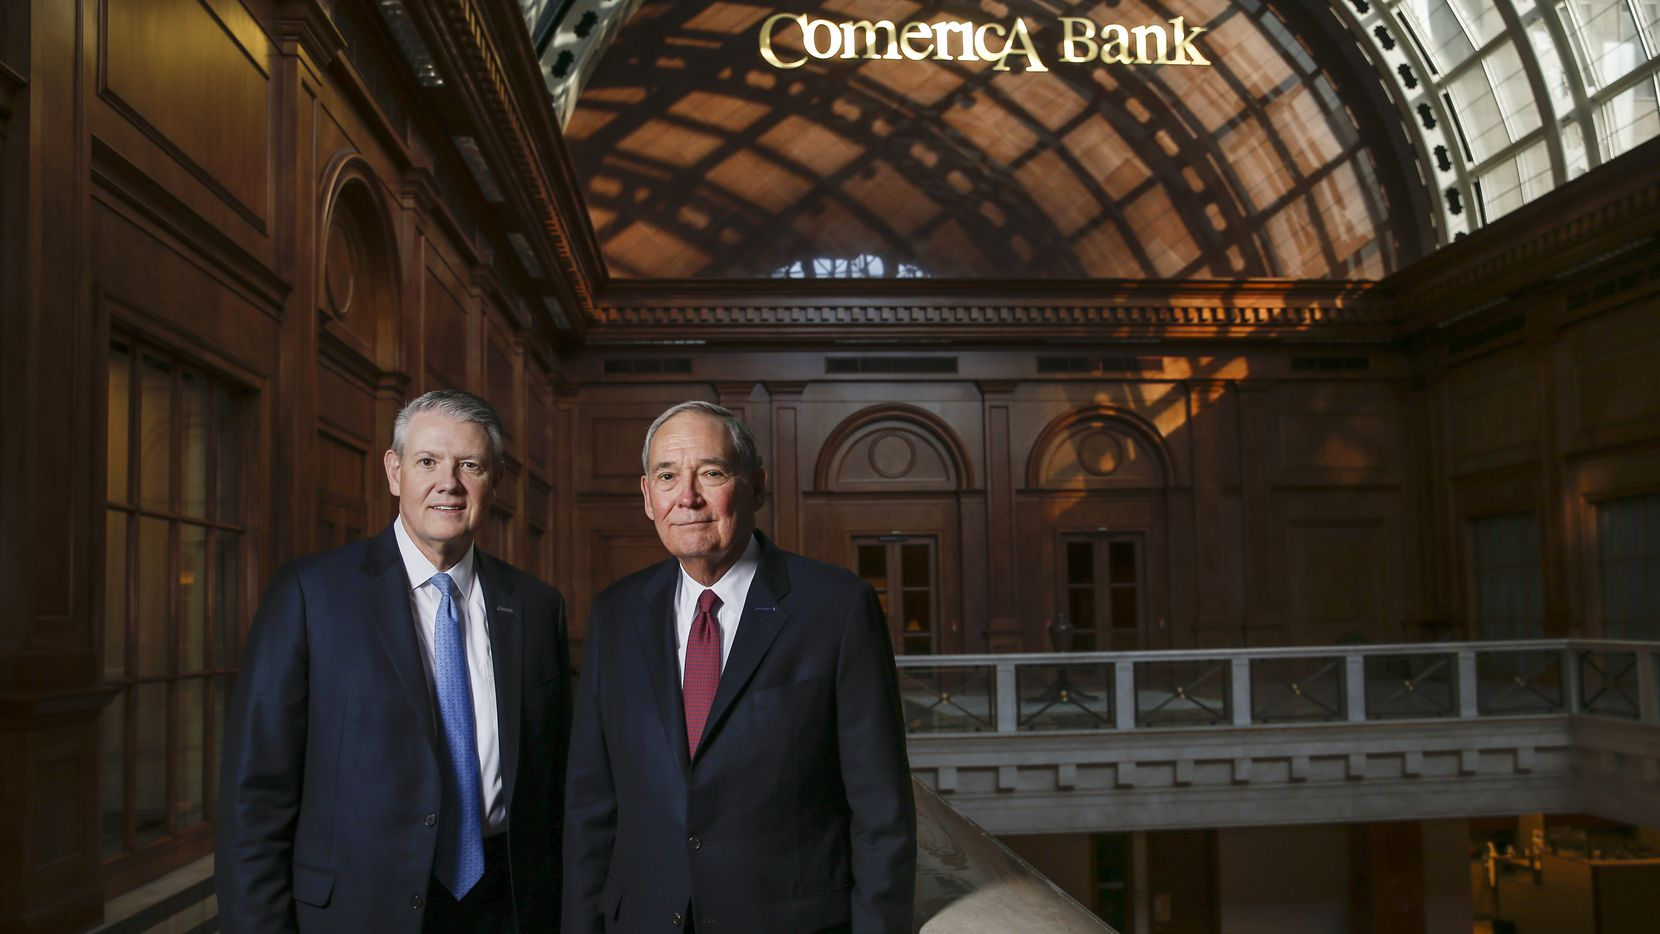 Curtis Farmer, left, was named Comerica CEO in April and will add the chairman's title on Jan. 1. His mentor, Ralph Babb, right, is retiring after 41 years in banking.